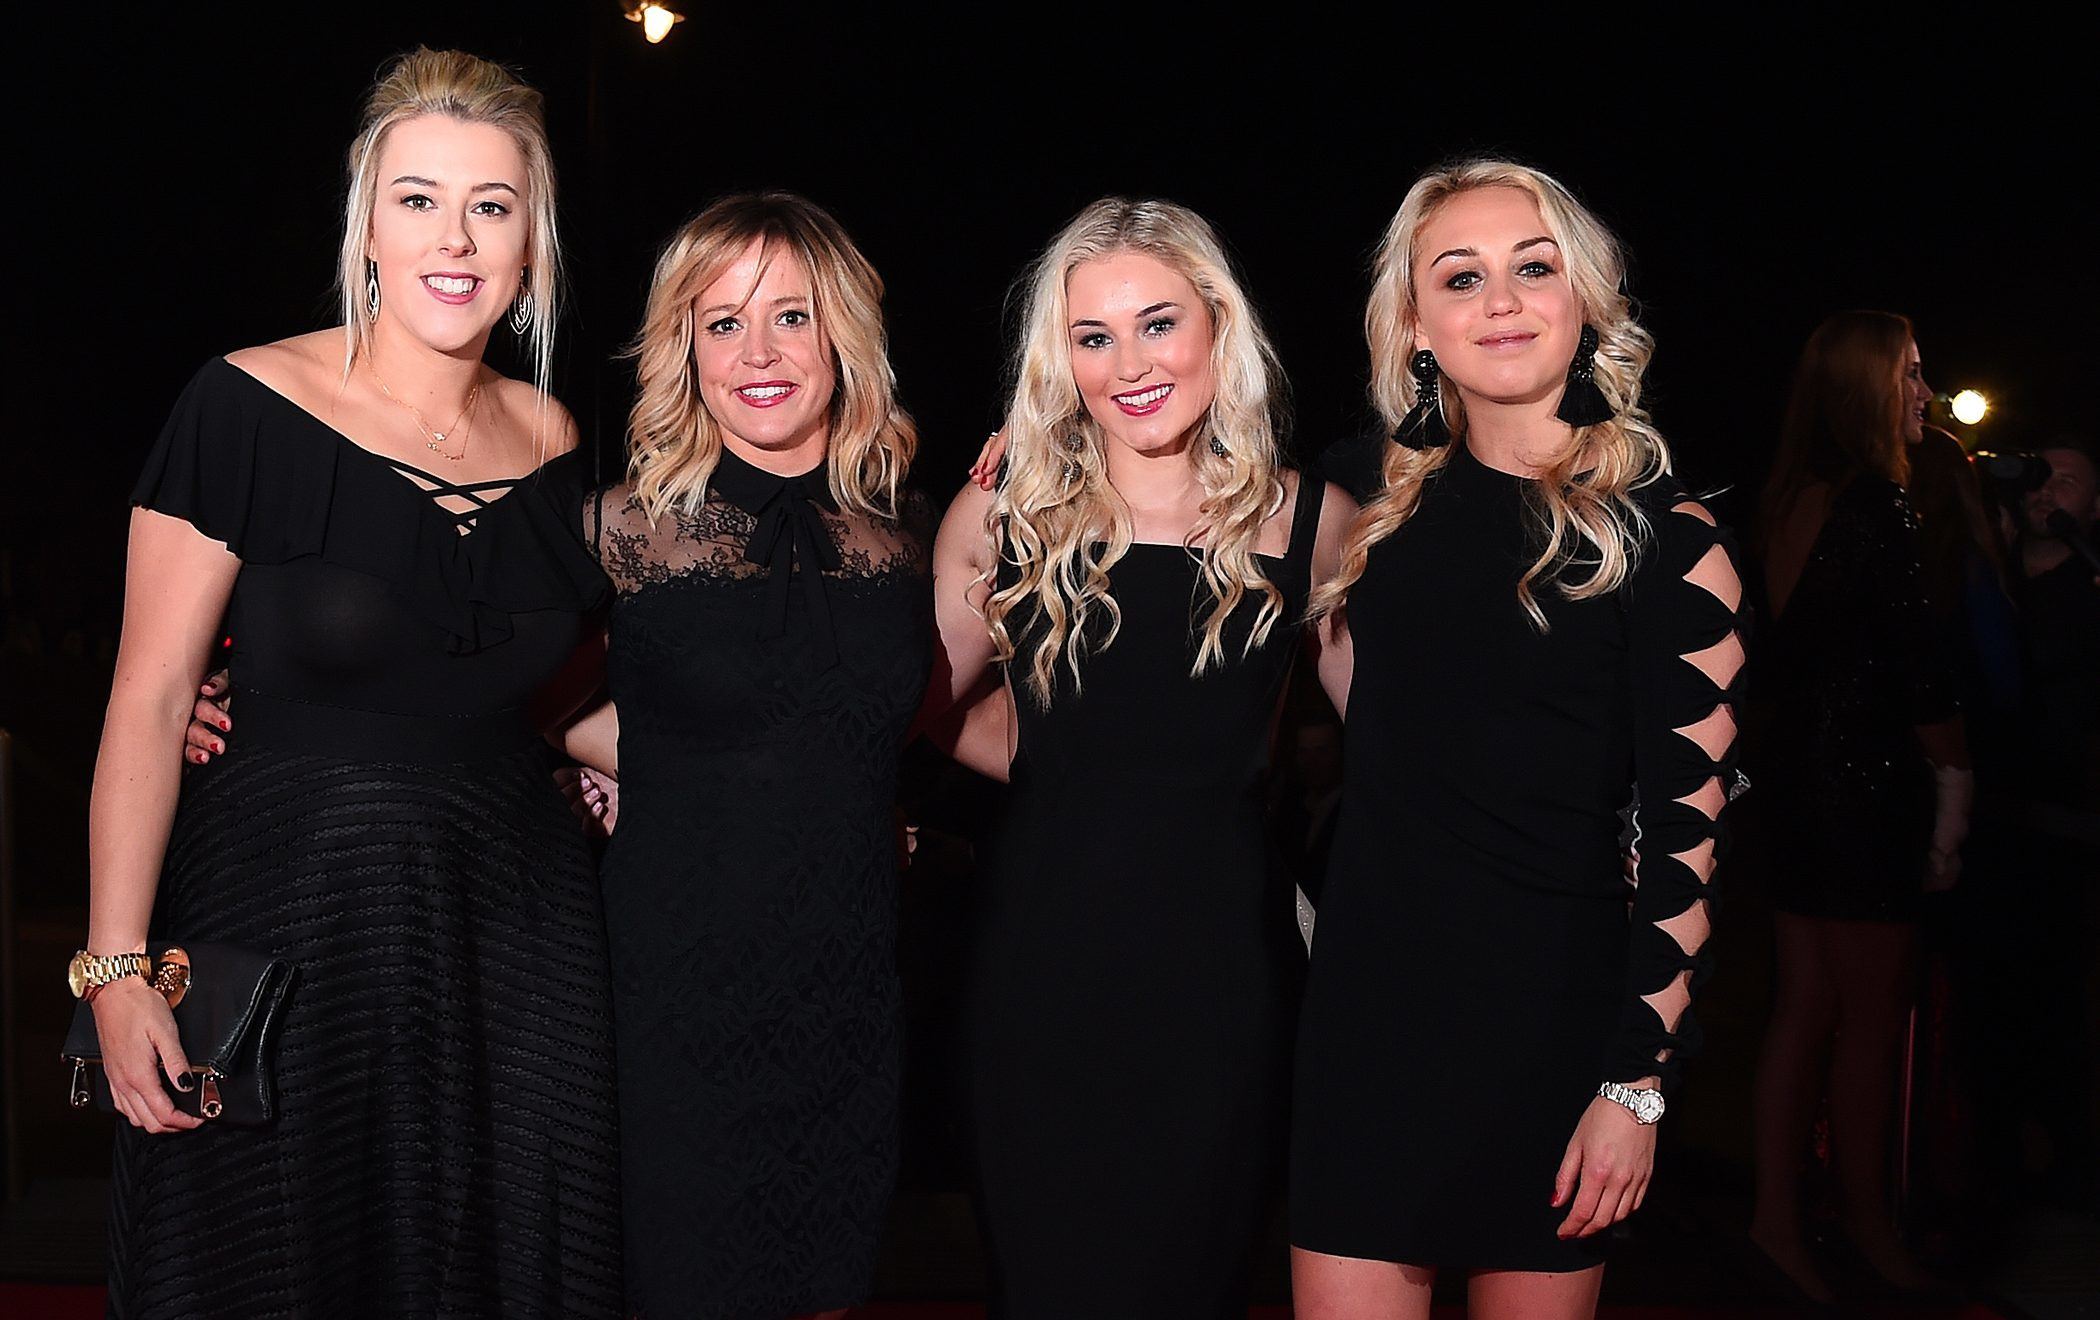 Winter Olympians Katie Summerhayes, Jenny Jones, Katie Ormerod and Aimee Fuller attend the Team GB Ball.